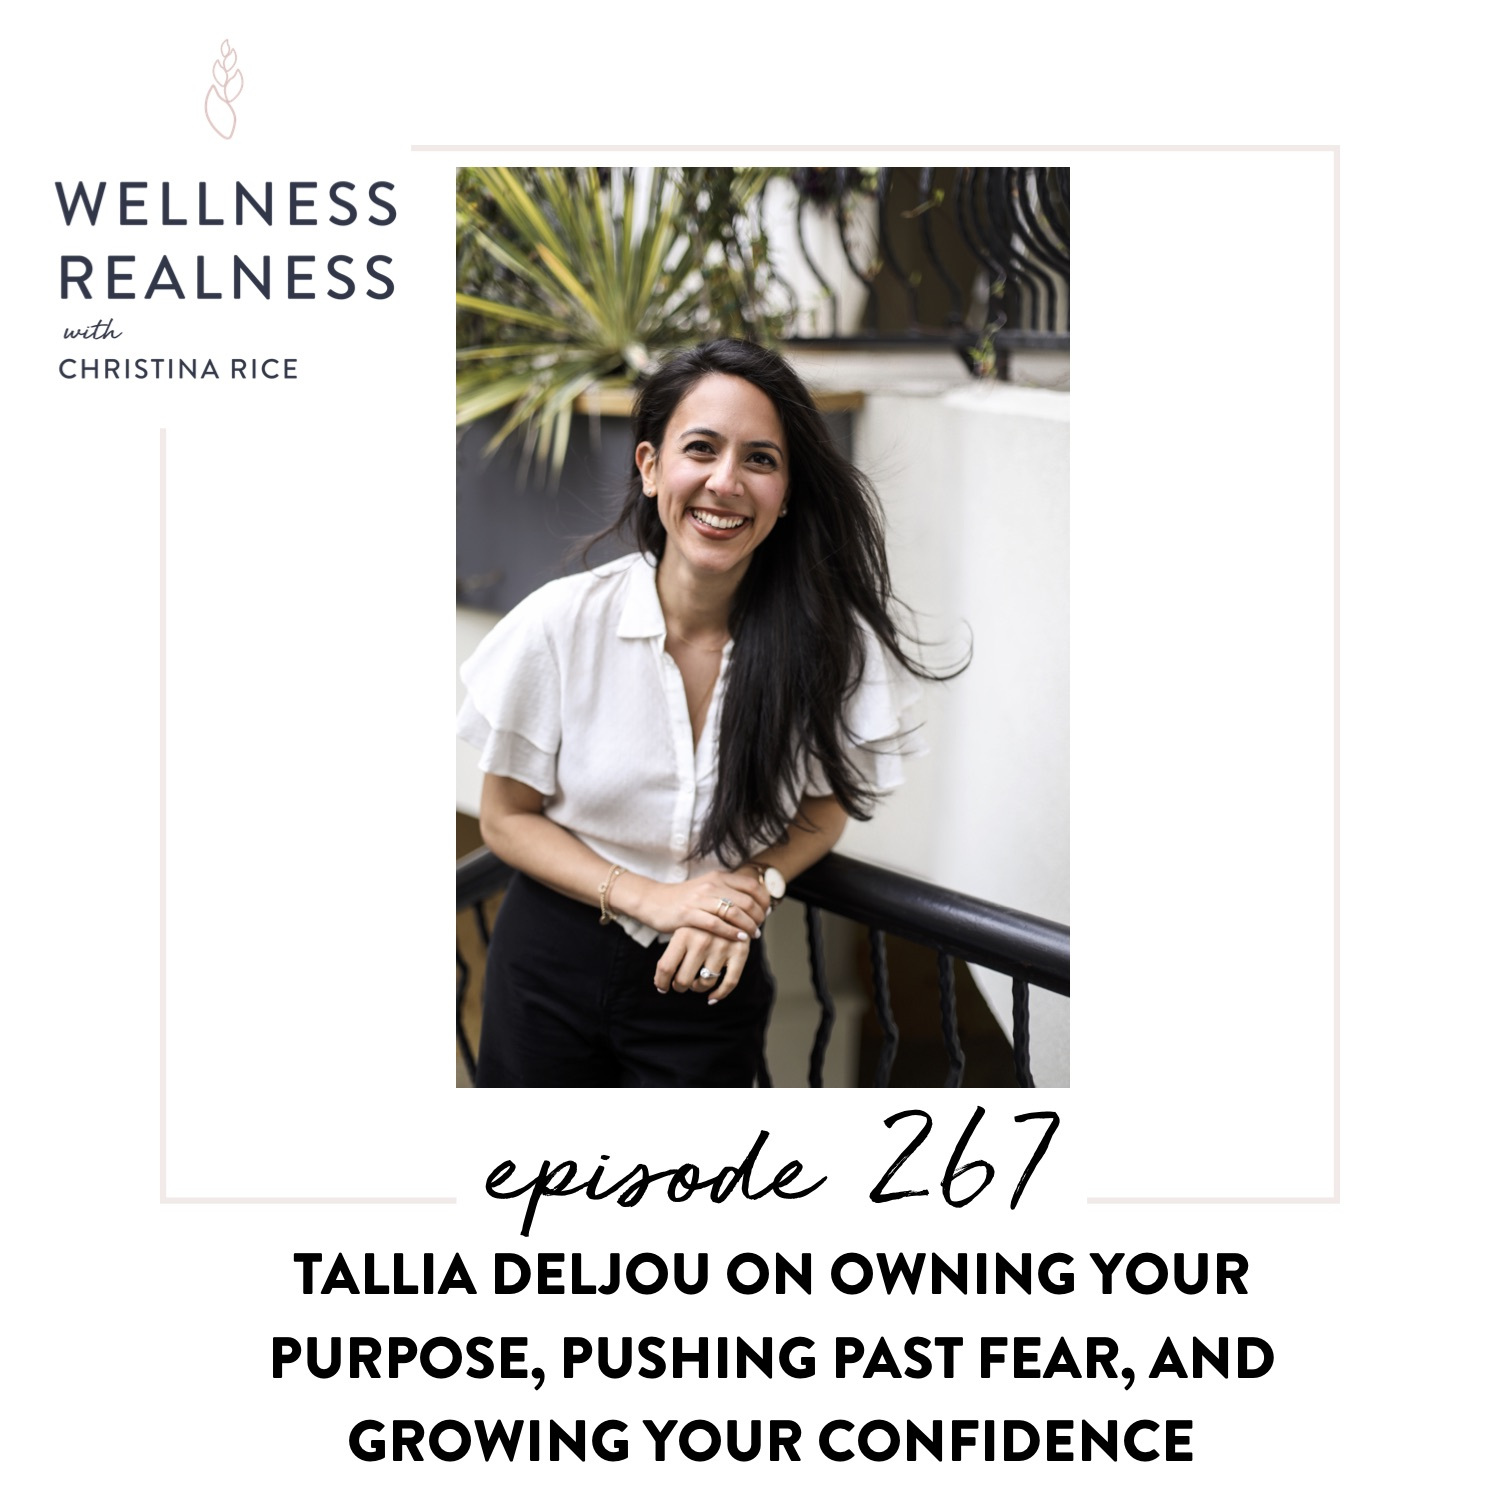 267: Tallia Deljou on Owning Your Purpose, Pushing Past Fear, and Growing Your Confidence